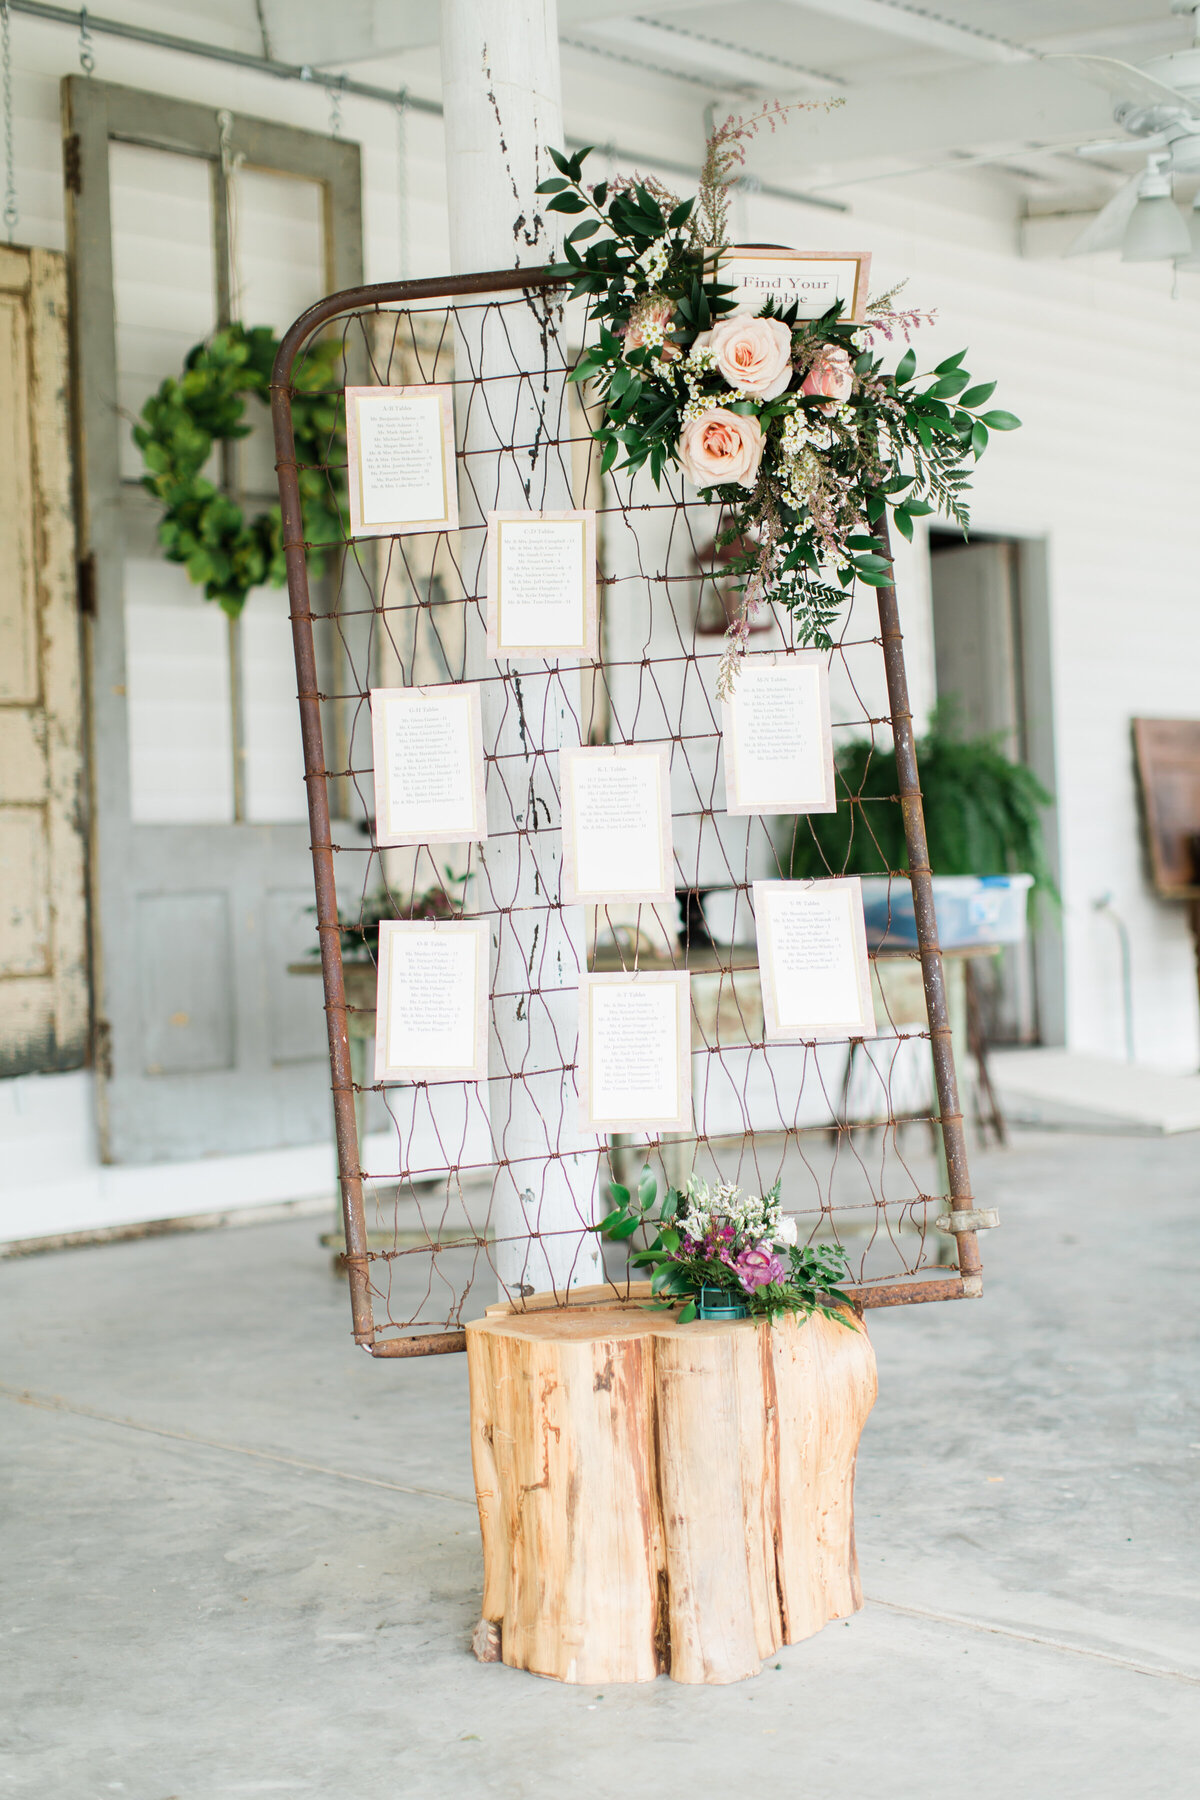 A stunning seating chart arrangement for a wedding. Displayed on a rustic vintage wire fence with florals hanging from it